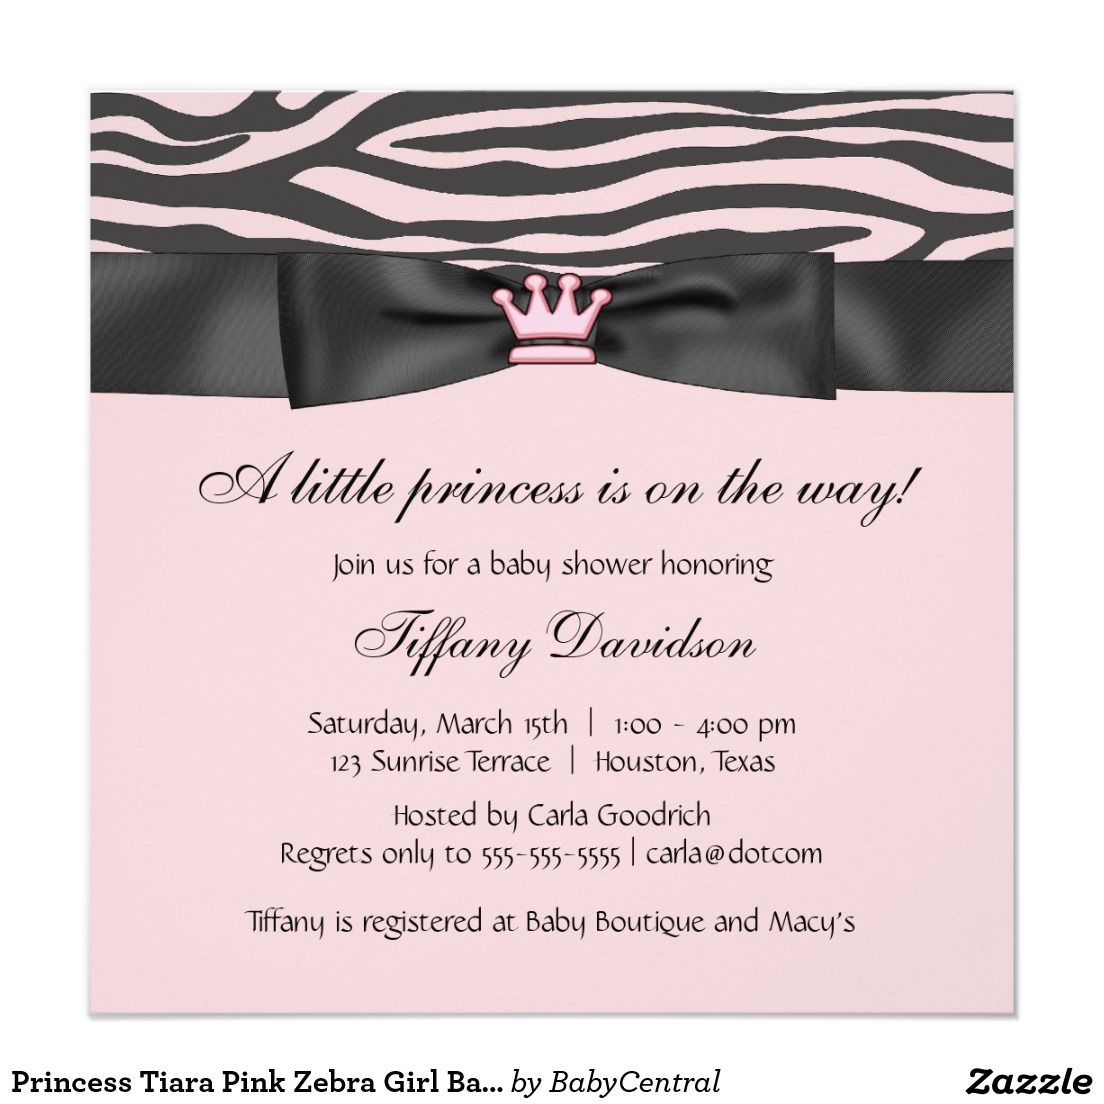 Princess Tiara Pink Zebra Girl Baby Shower Invitation | Girl Baby ...